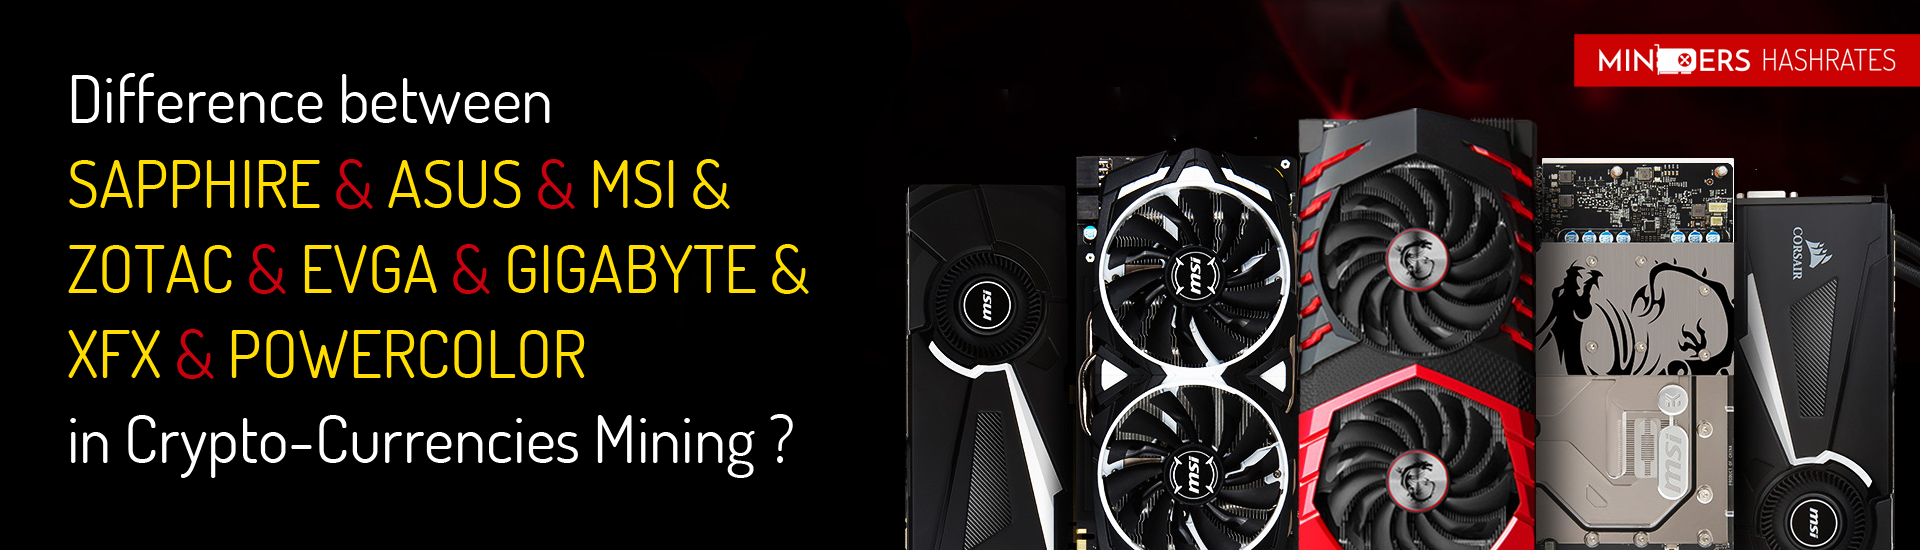 Difference between SAPPHIRE & ASUS & MSI & ZOTAC & EVGA & GIGABYTE & XFX & POWERCOLOR in Crypto-Currencies Mining